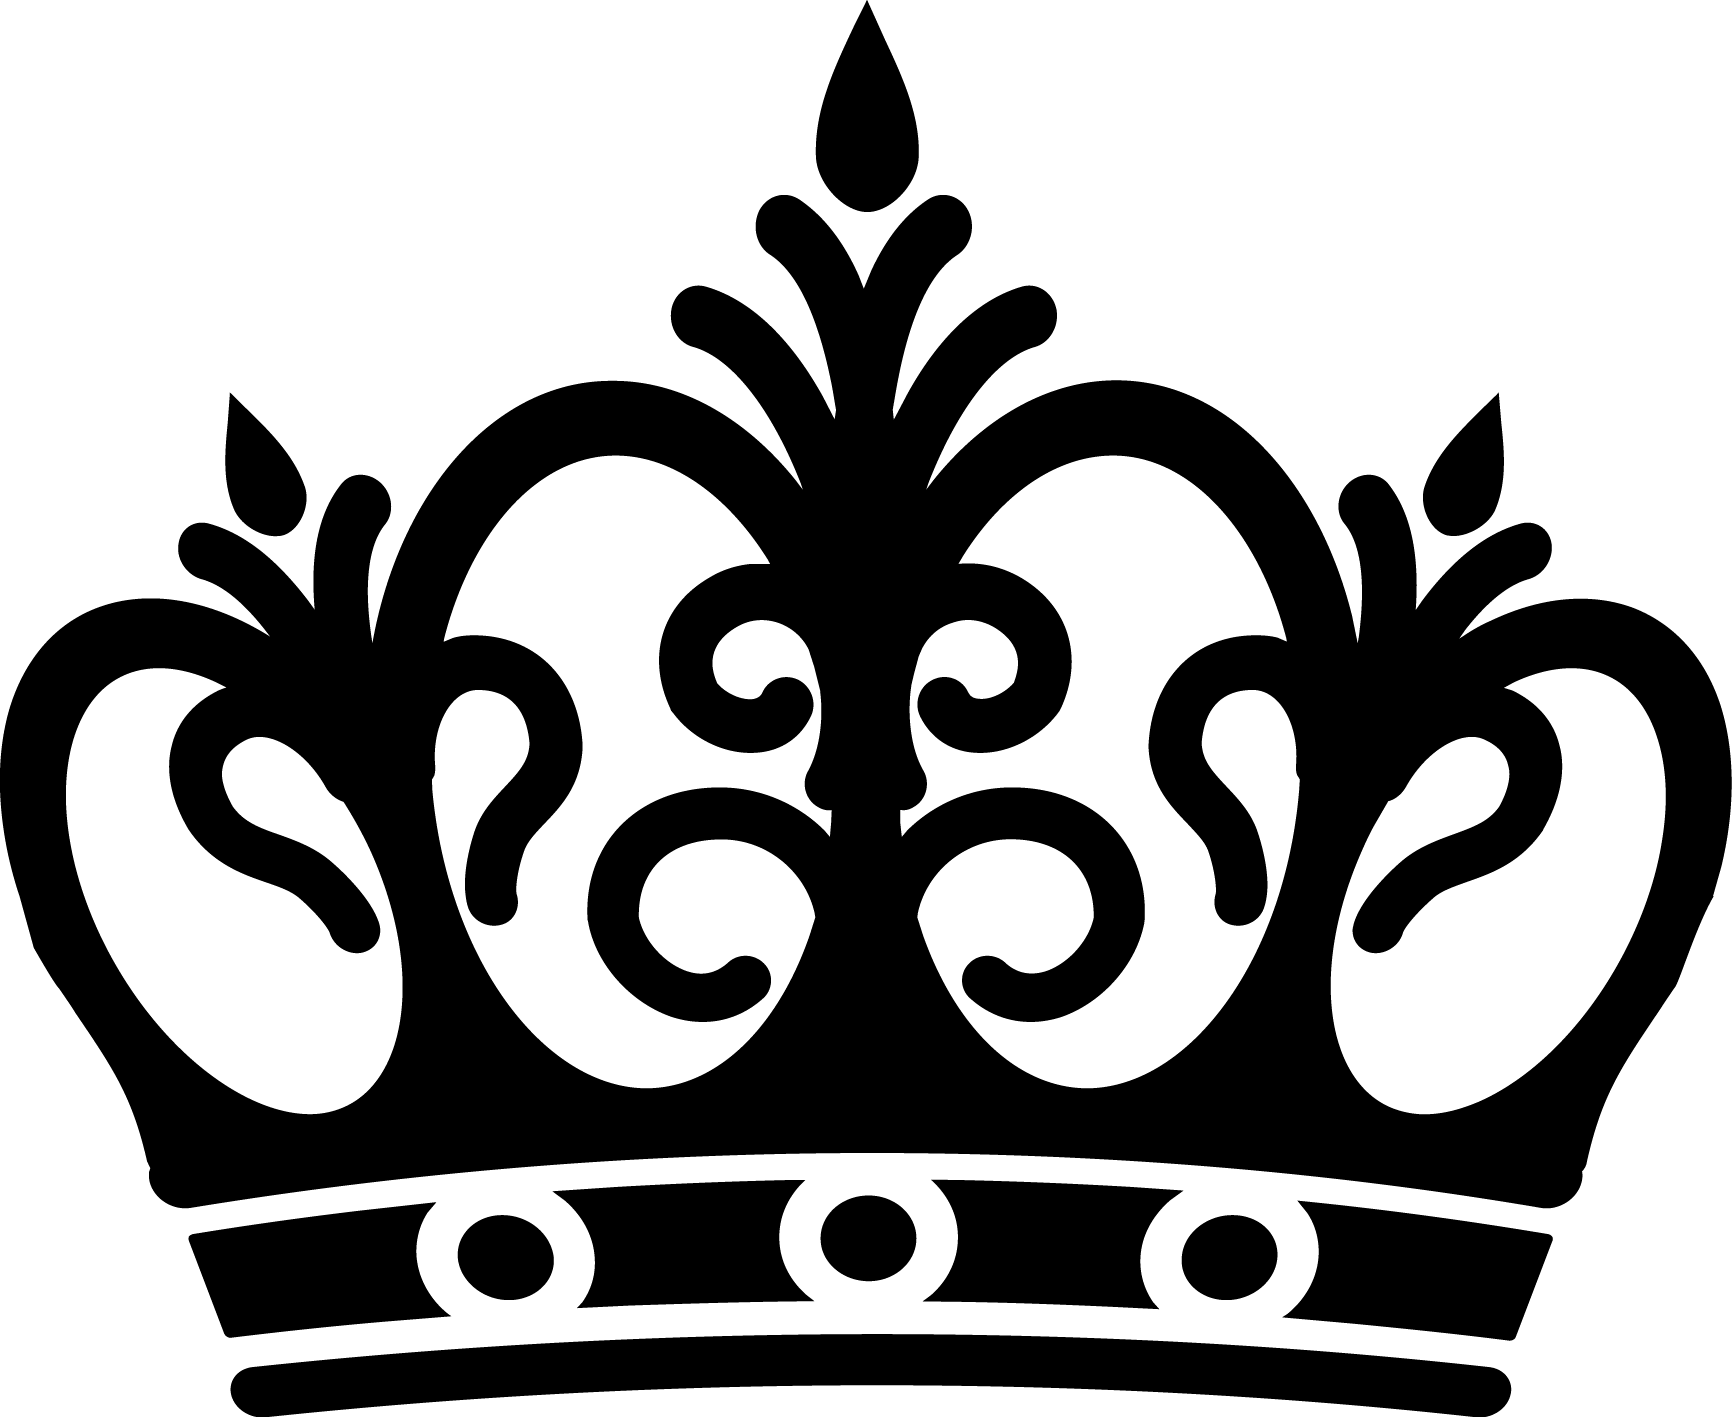 Crown white clipart png png transparent crown vector png - Buscar con Google | Tatuajes | Pinterest | Crown ... png transparent